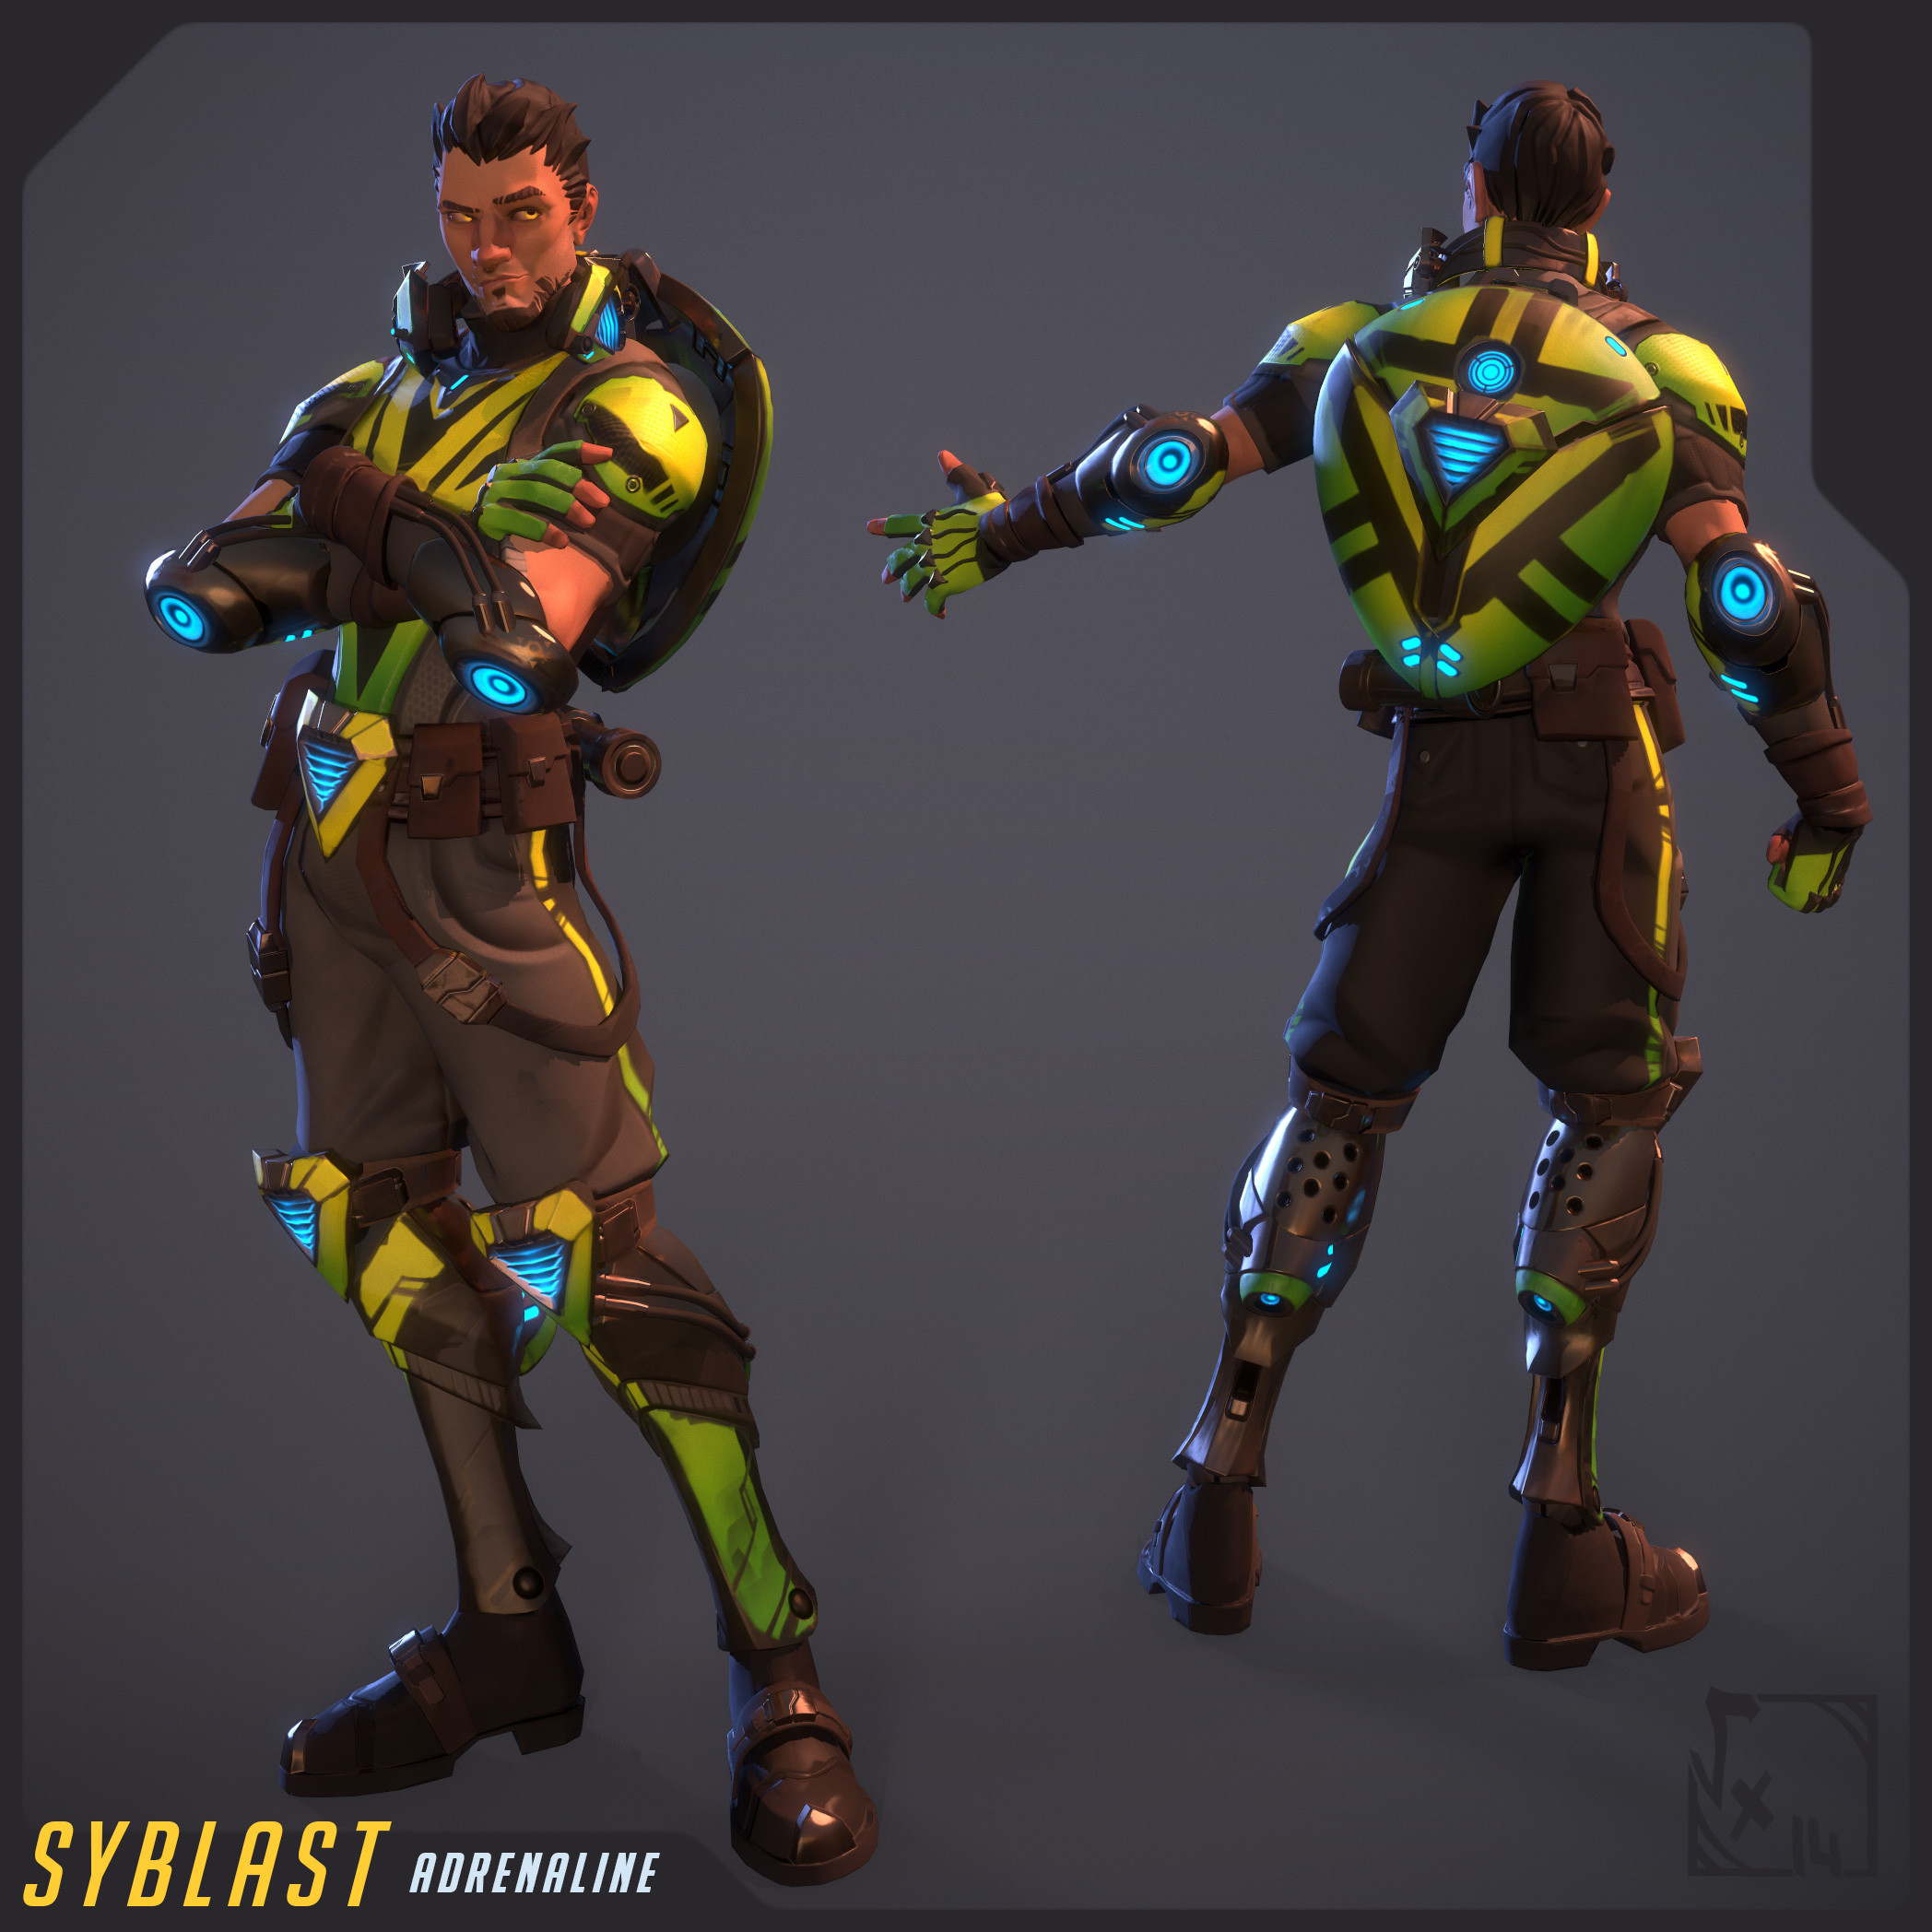 Syblast - Adrenaline skin - fully textured with 3D-Coat and rigged/skinned on Akeytsu